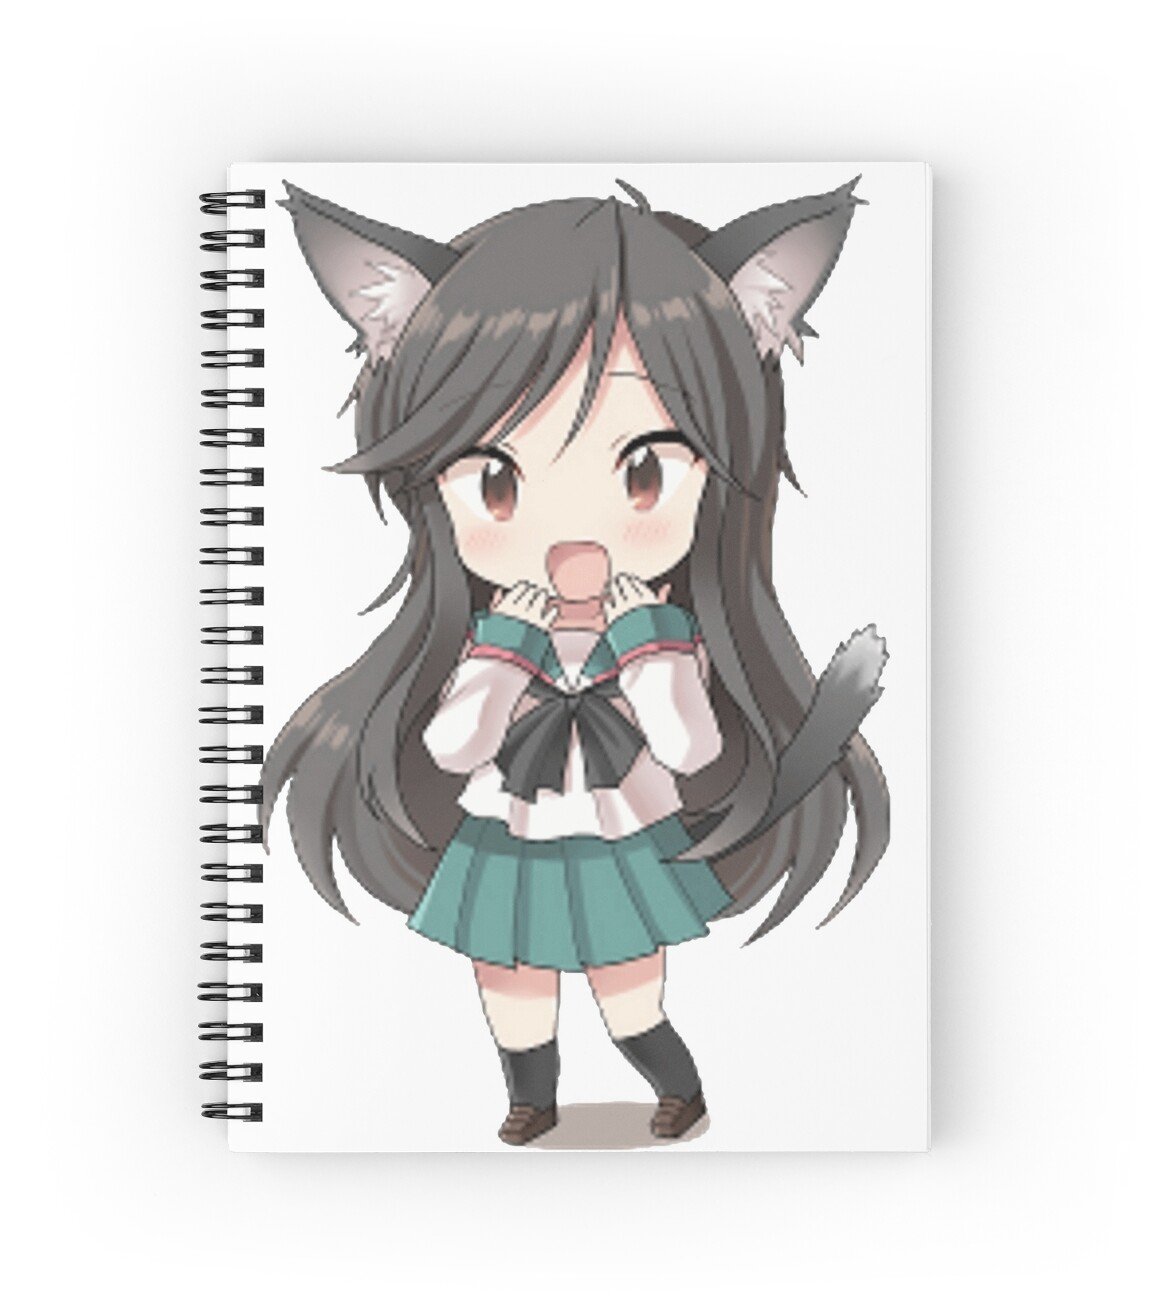 Anime cat girl chibi spiral notebooks by xithyll redbubble - Anime kitty girl ...